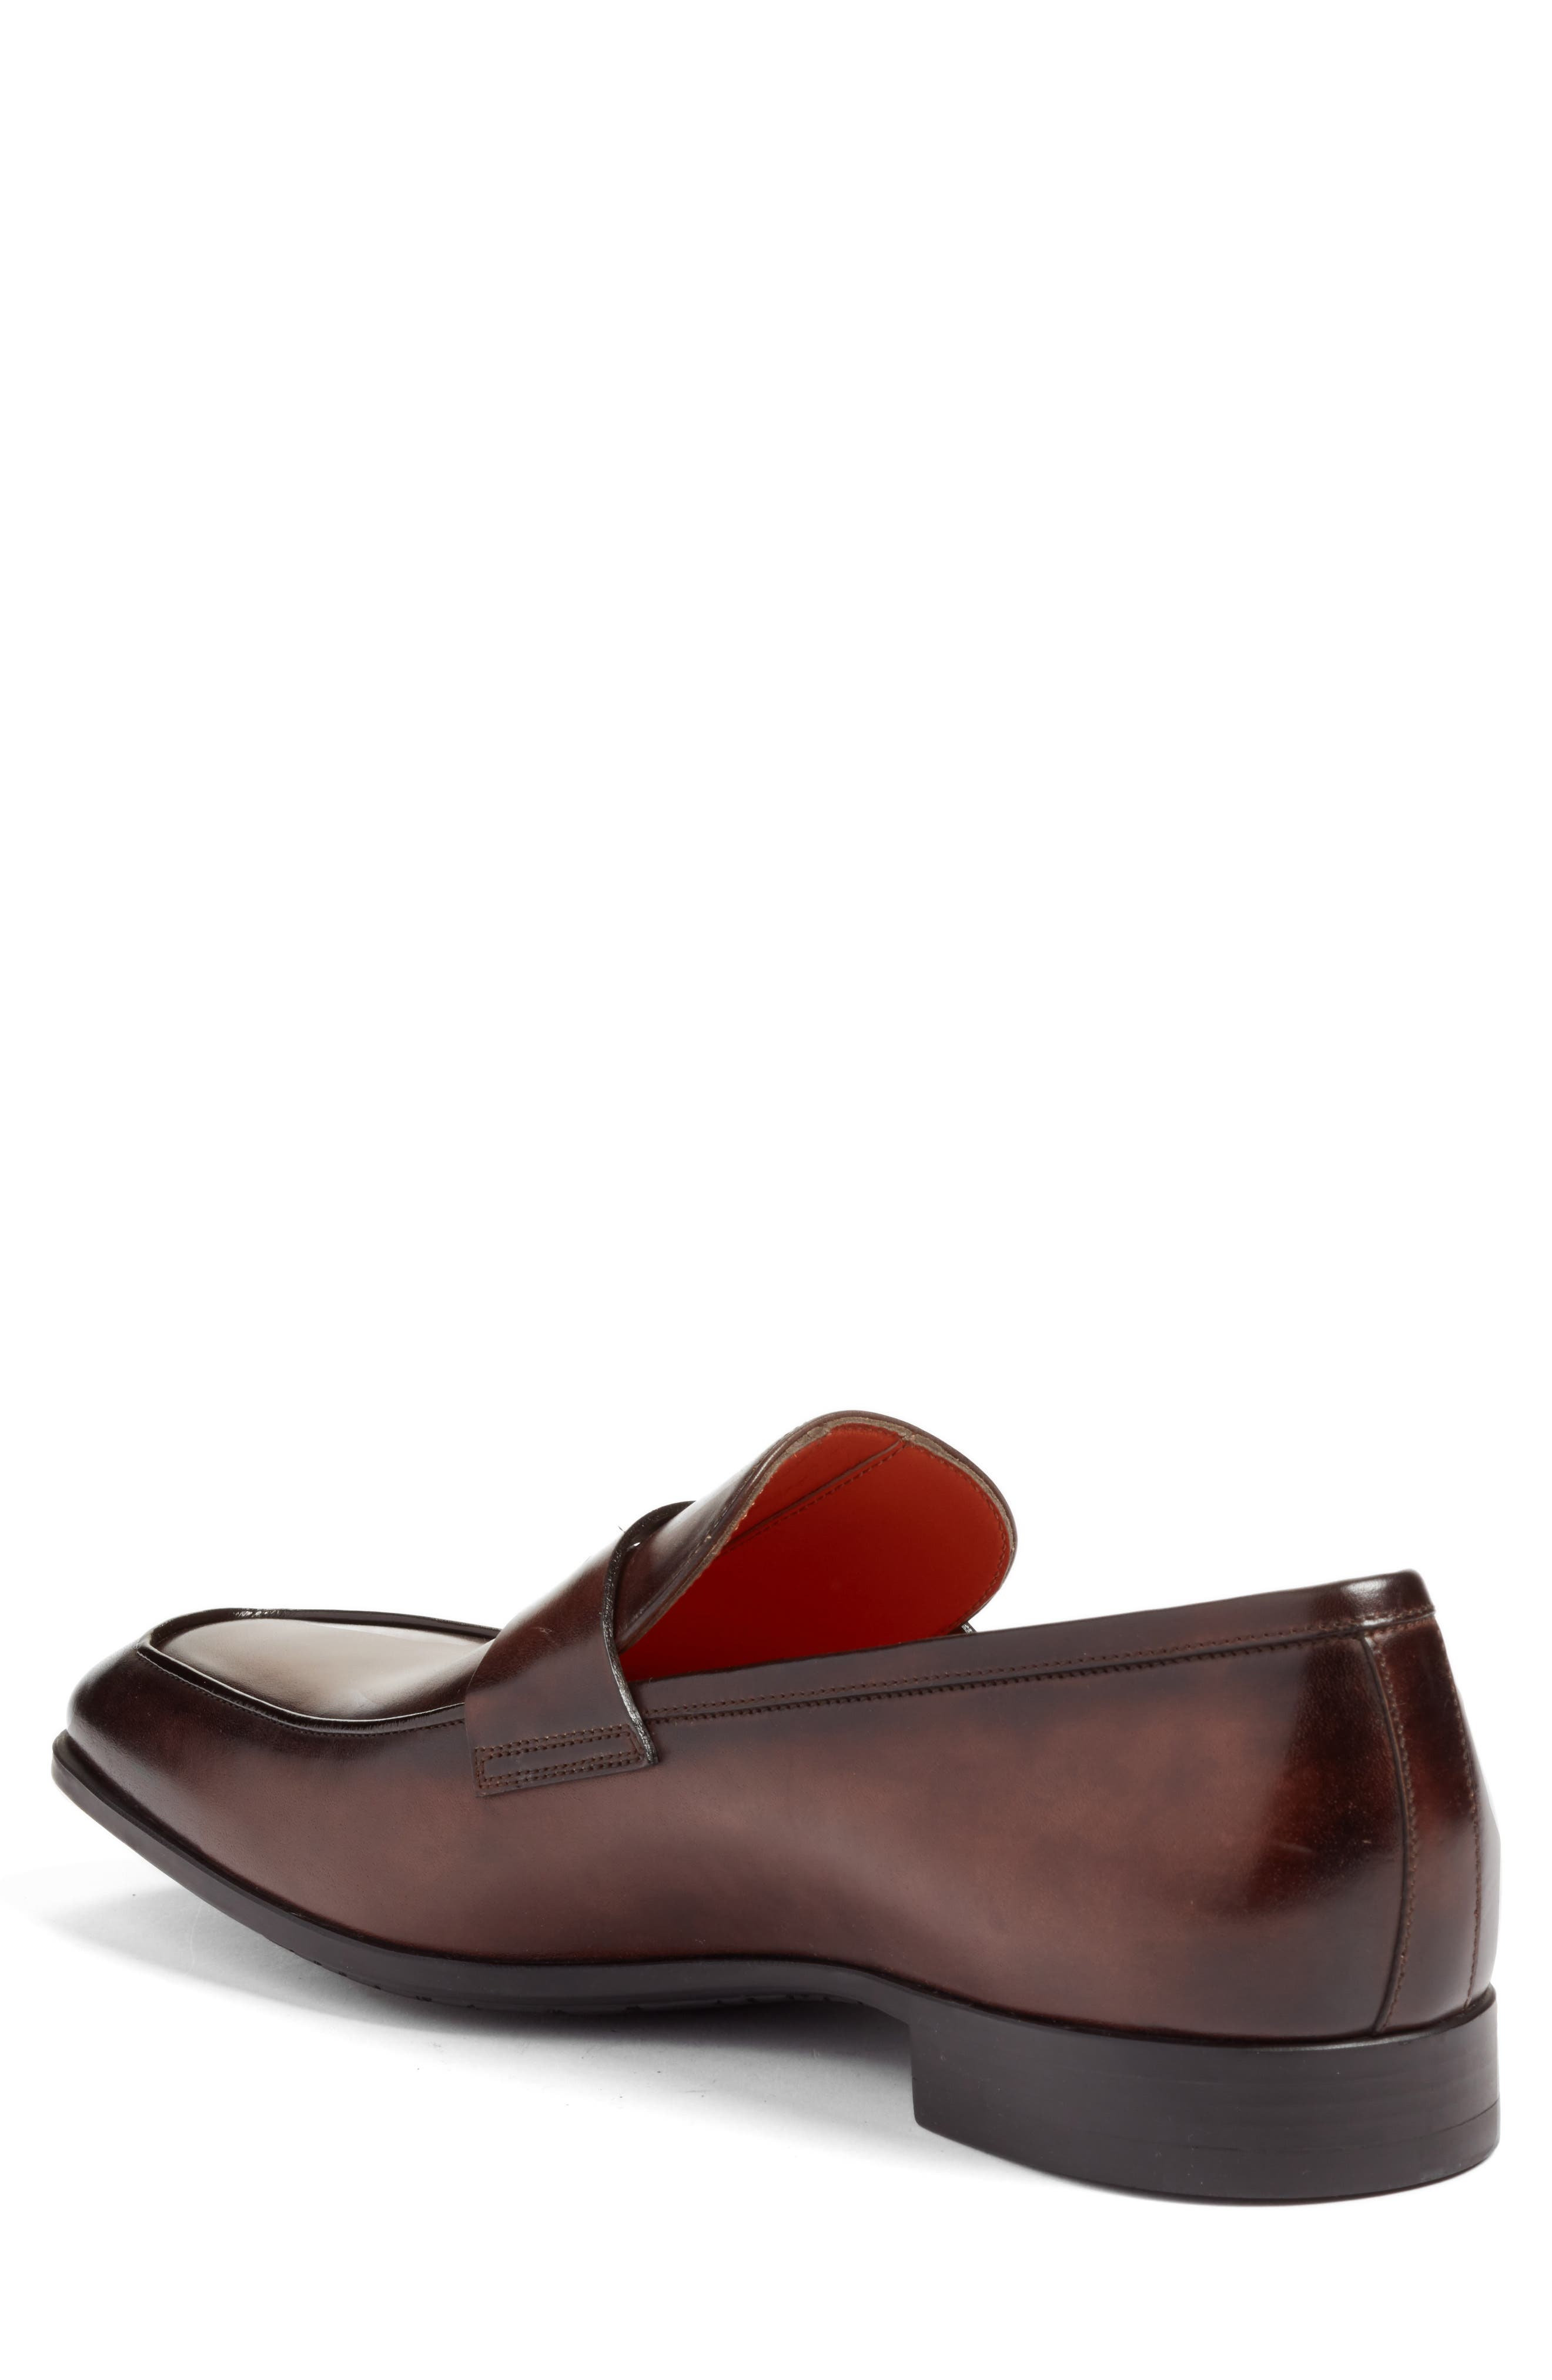 Fisk Square Toe Penny Loafer,                             Alternate thumbnail 2, color,                             BROWN LEATHER